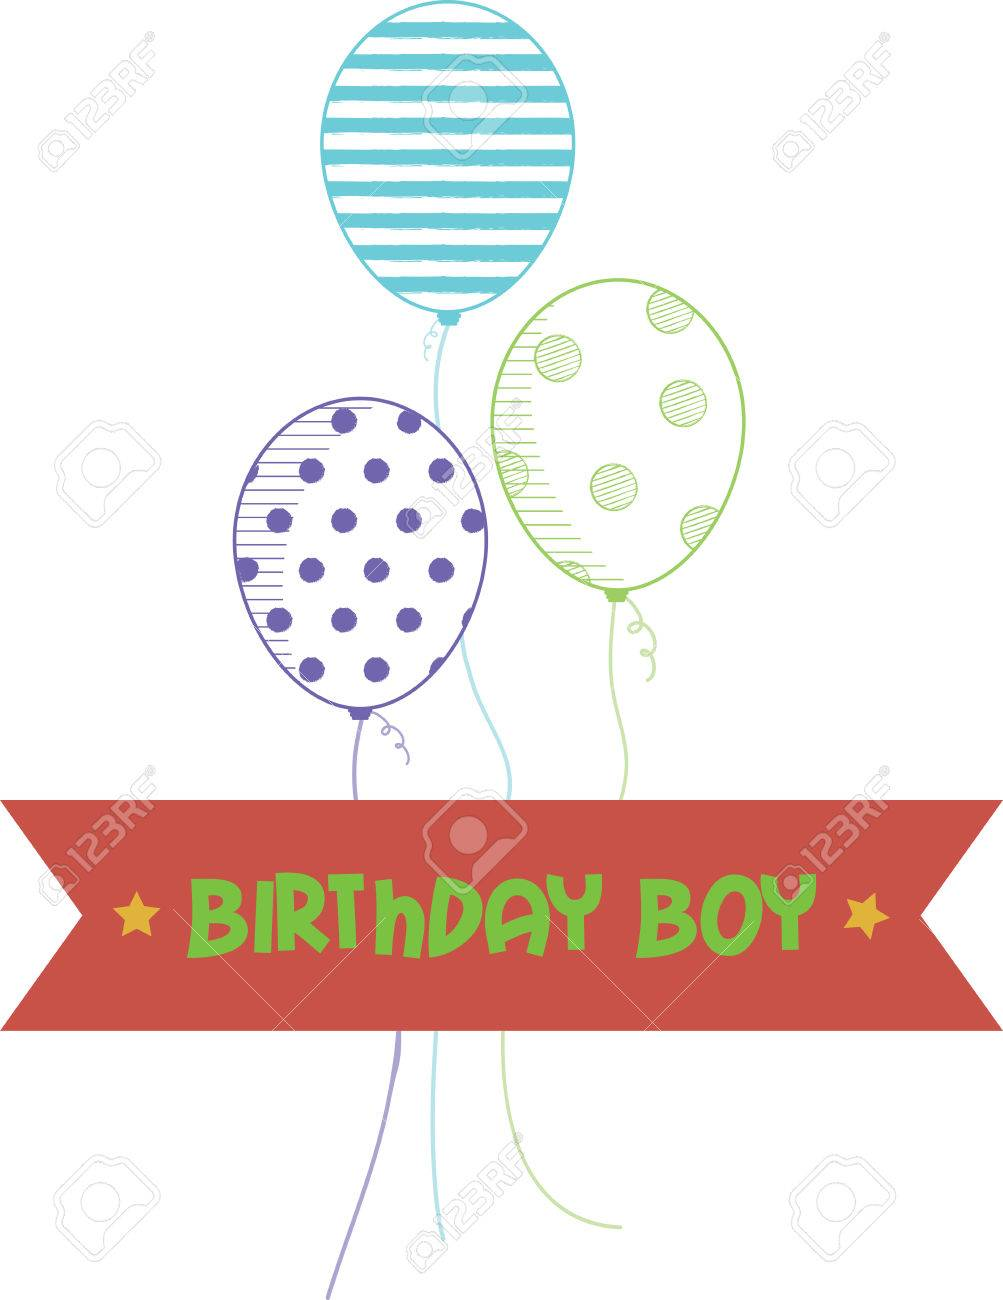 Our Cheery Balloons Deliver A Perfect Birthday Wish To Happy Boy Stitch It On